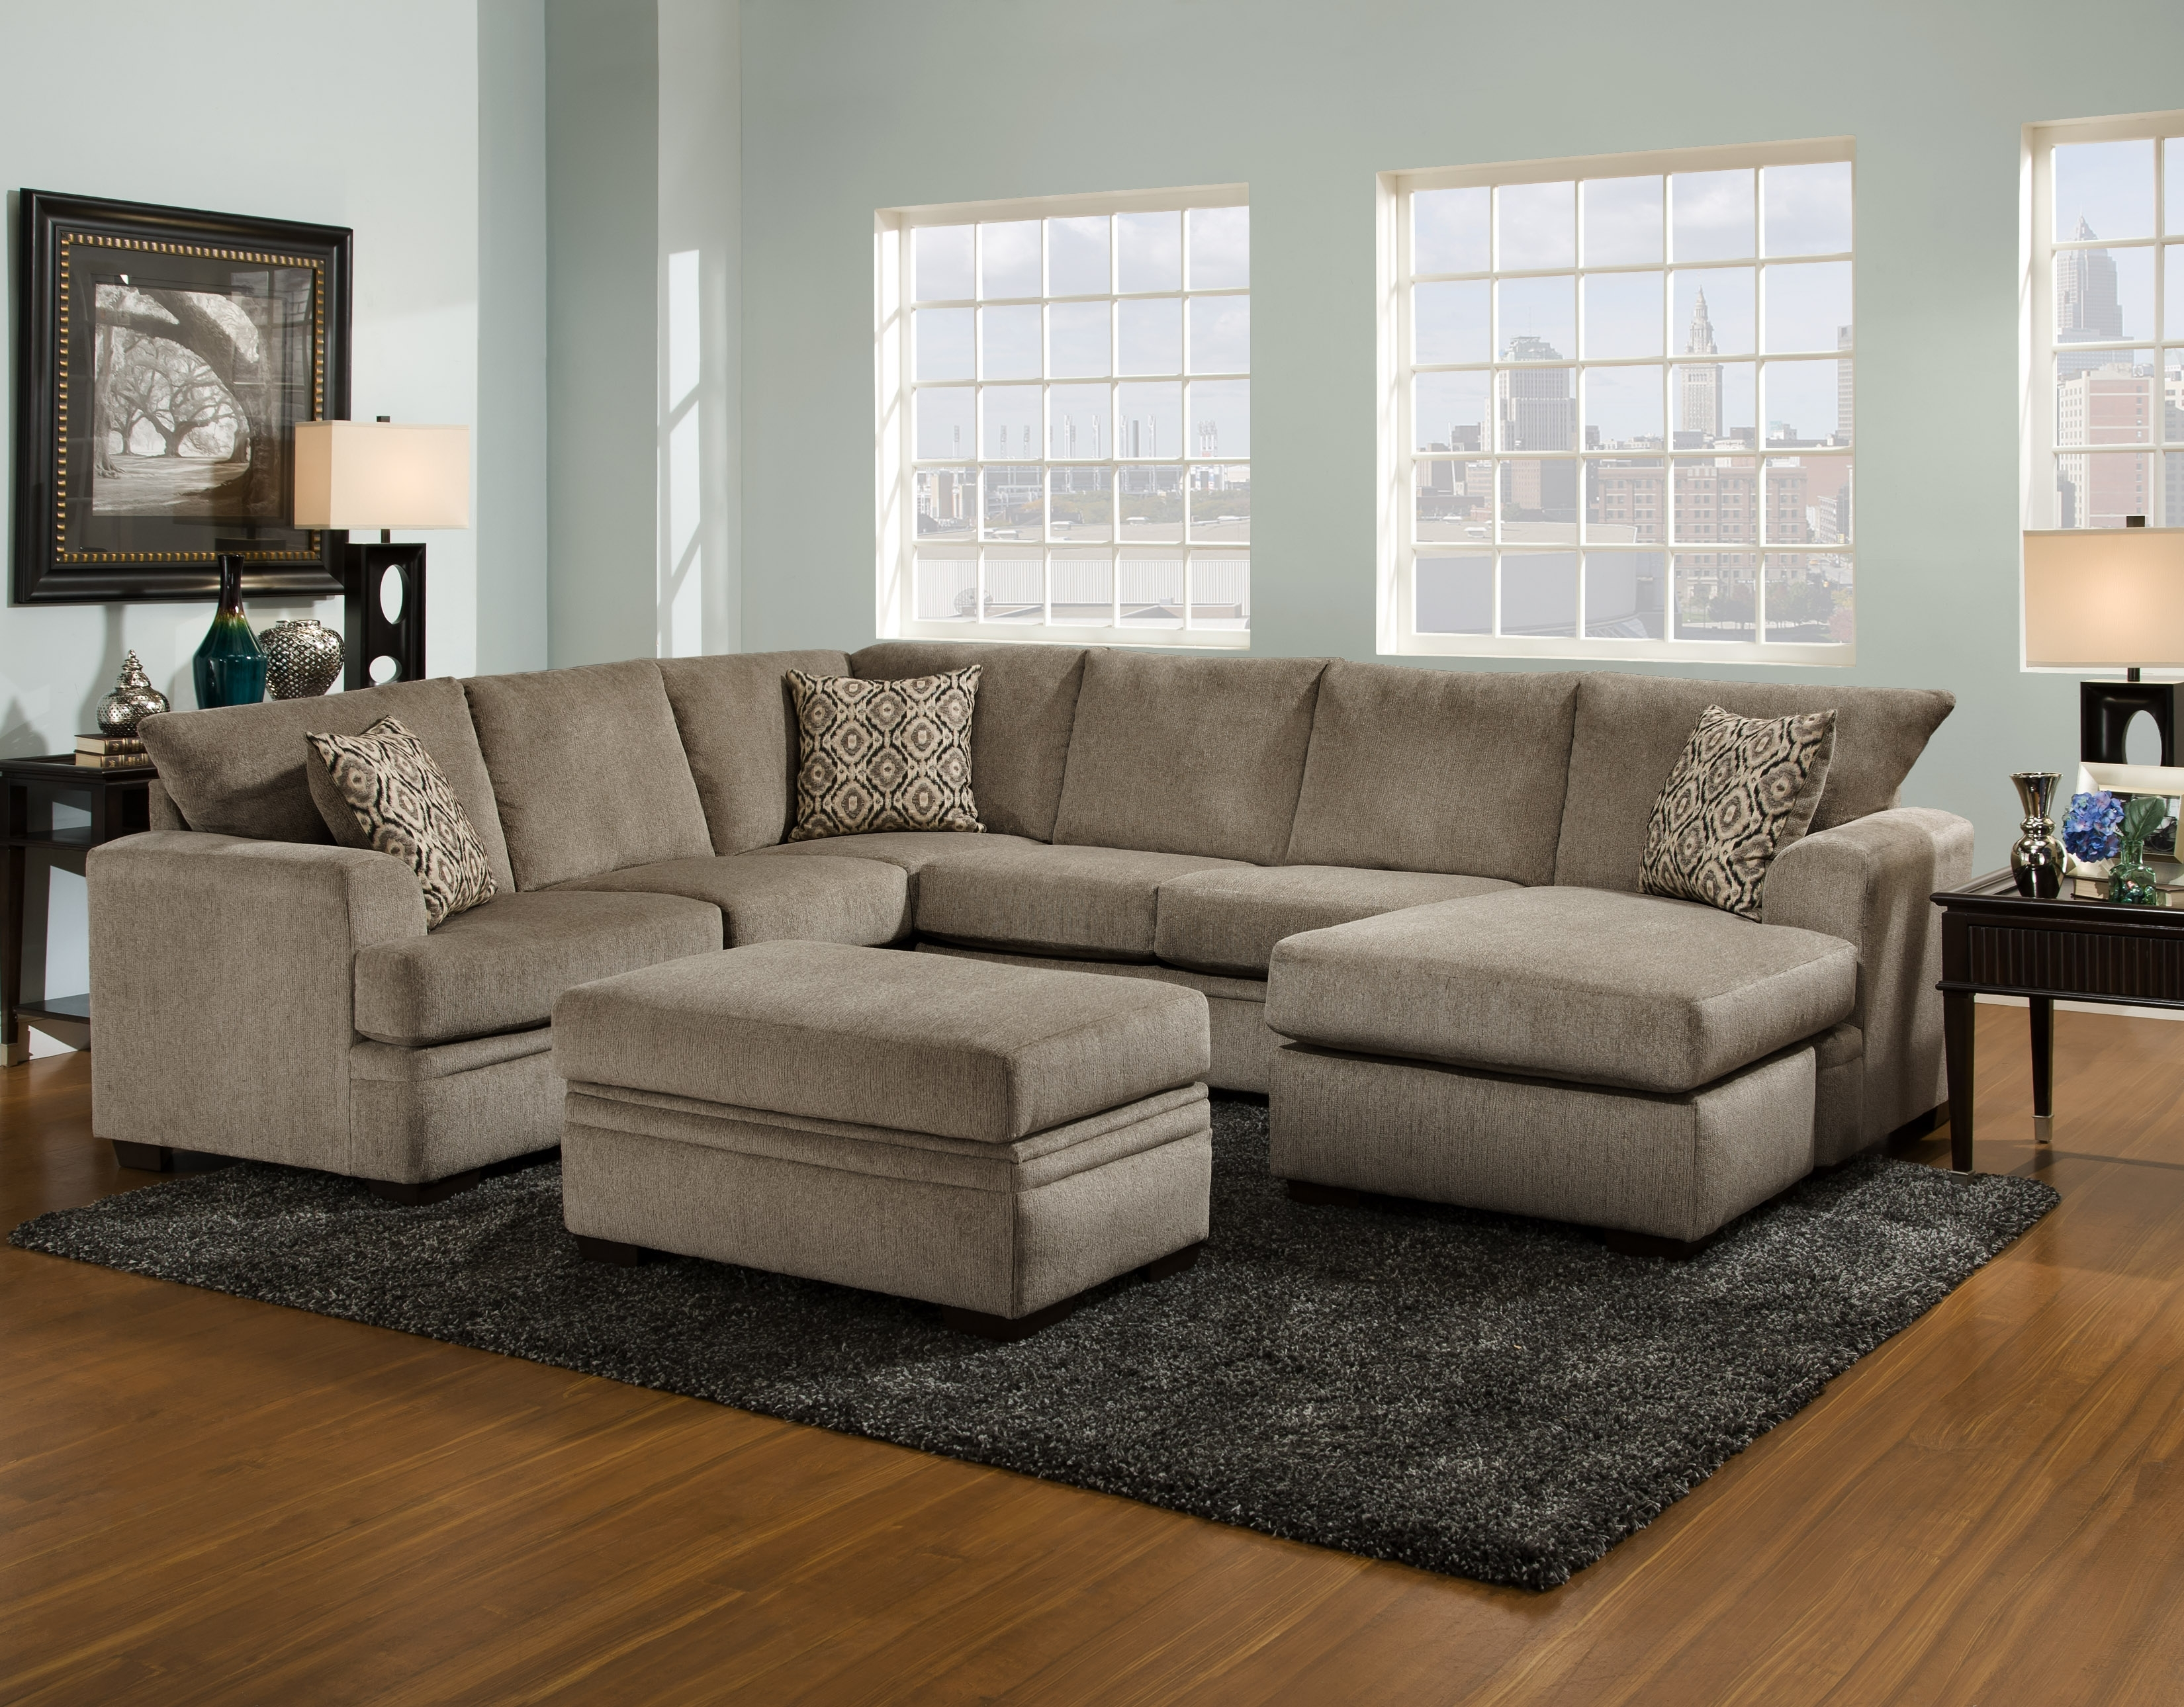 10 Ideas Of Janesville Wi Sectional Sofas Sofa